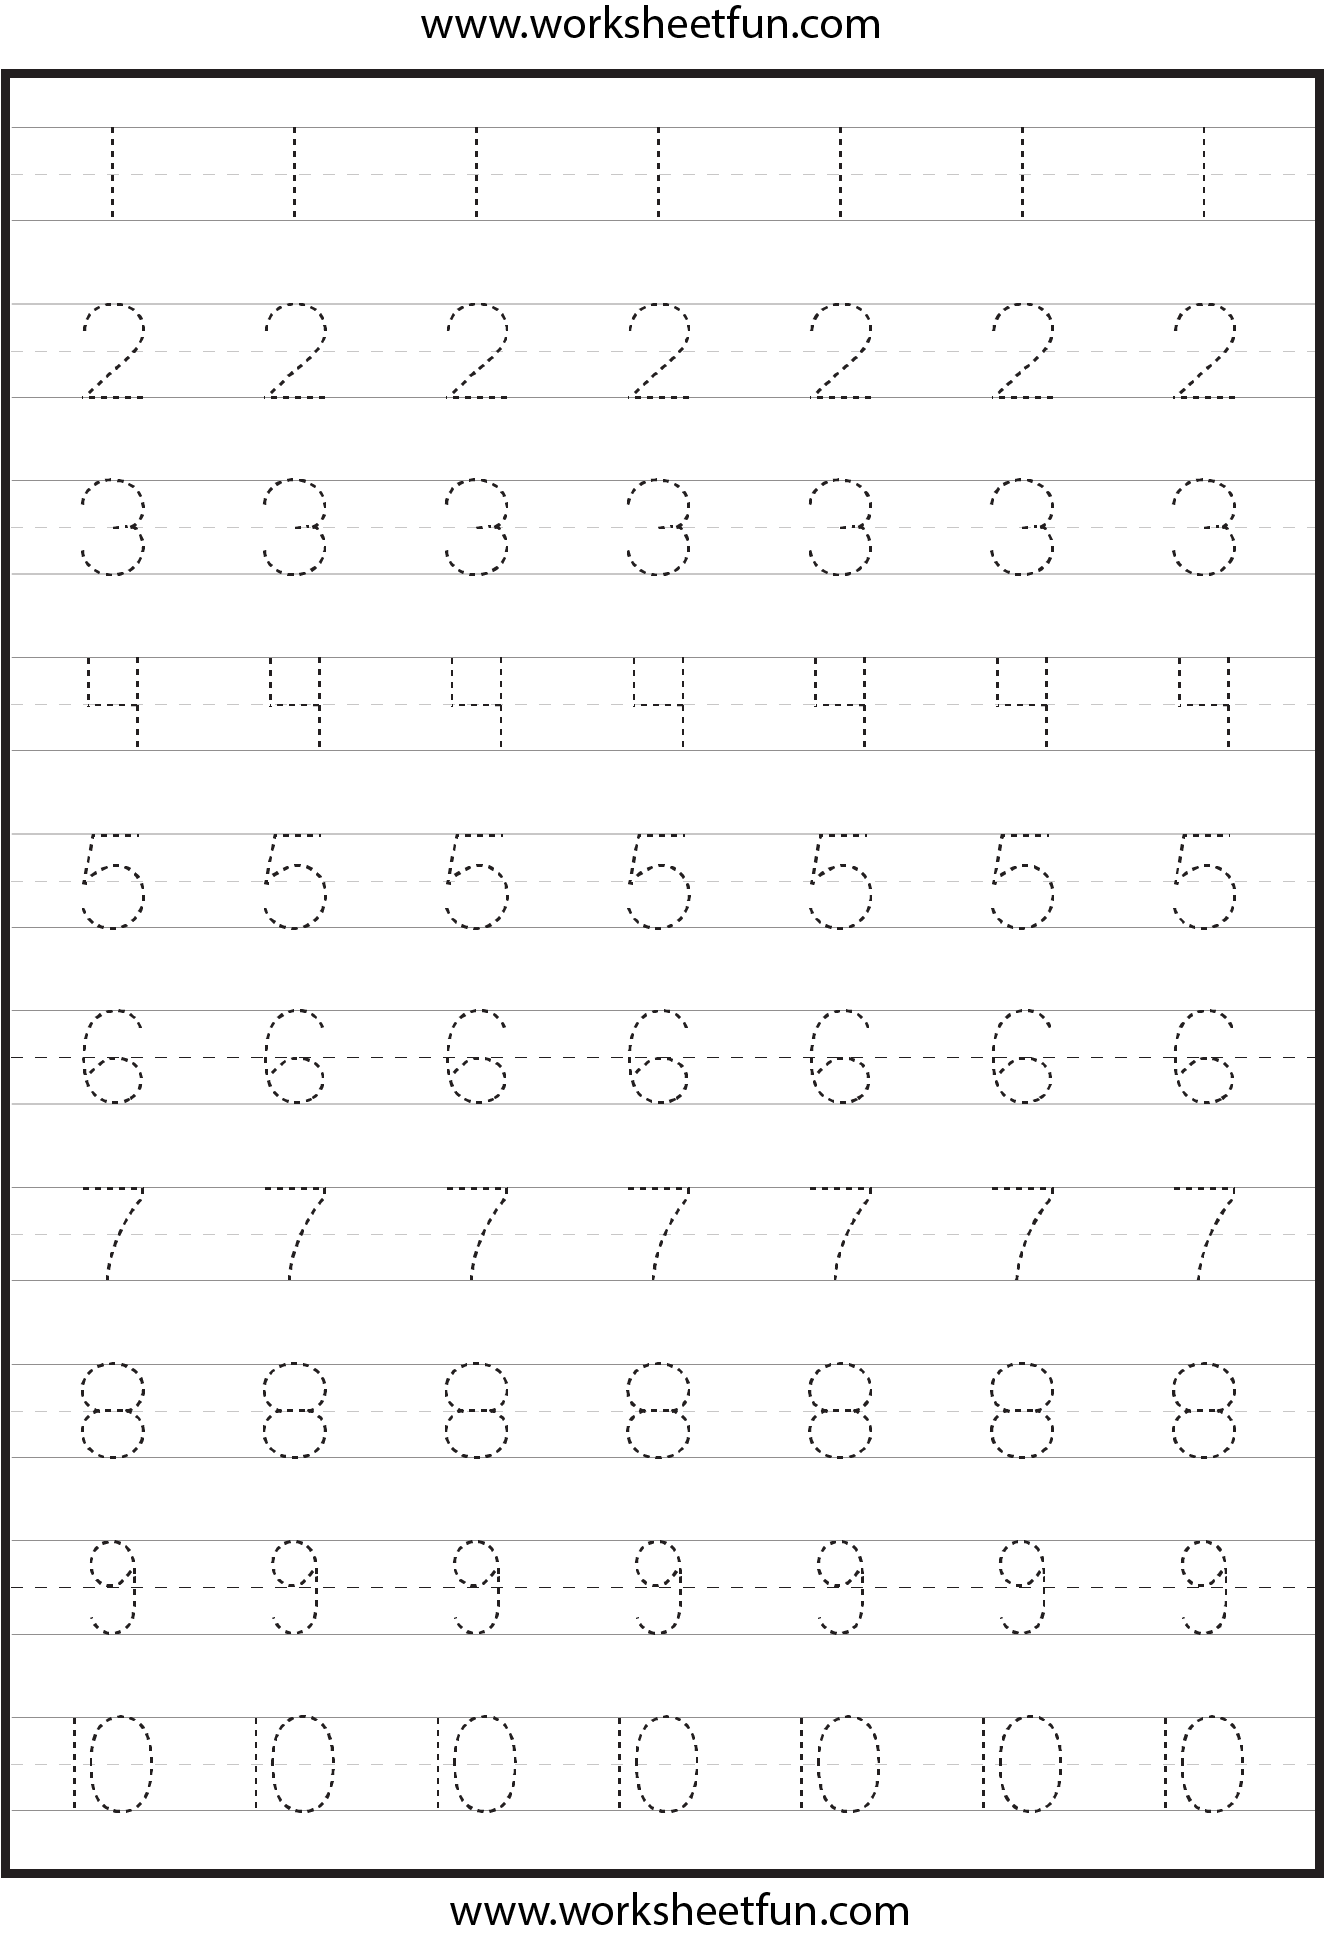 Number Tracing Worksheets For Kindergarten- 1-10 – Ten with regard to Abc 123 Tracing Worksheets